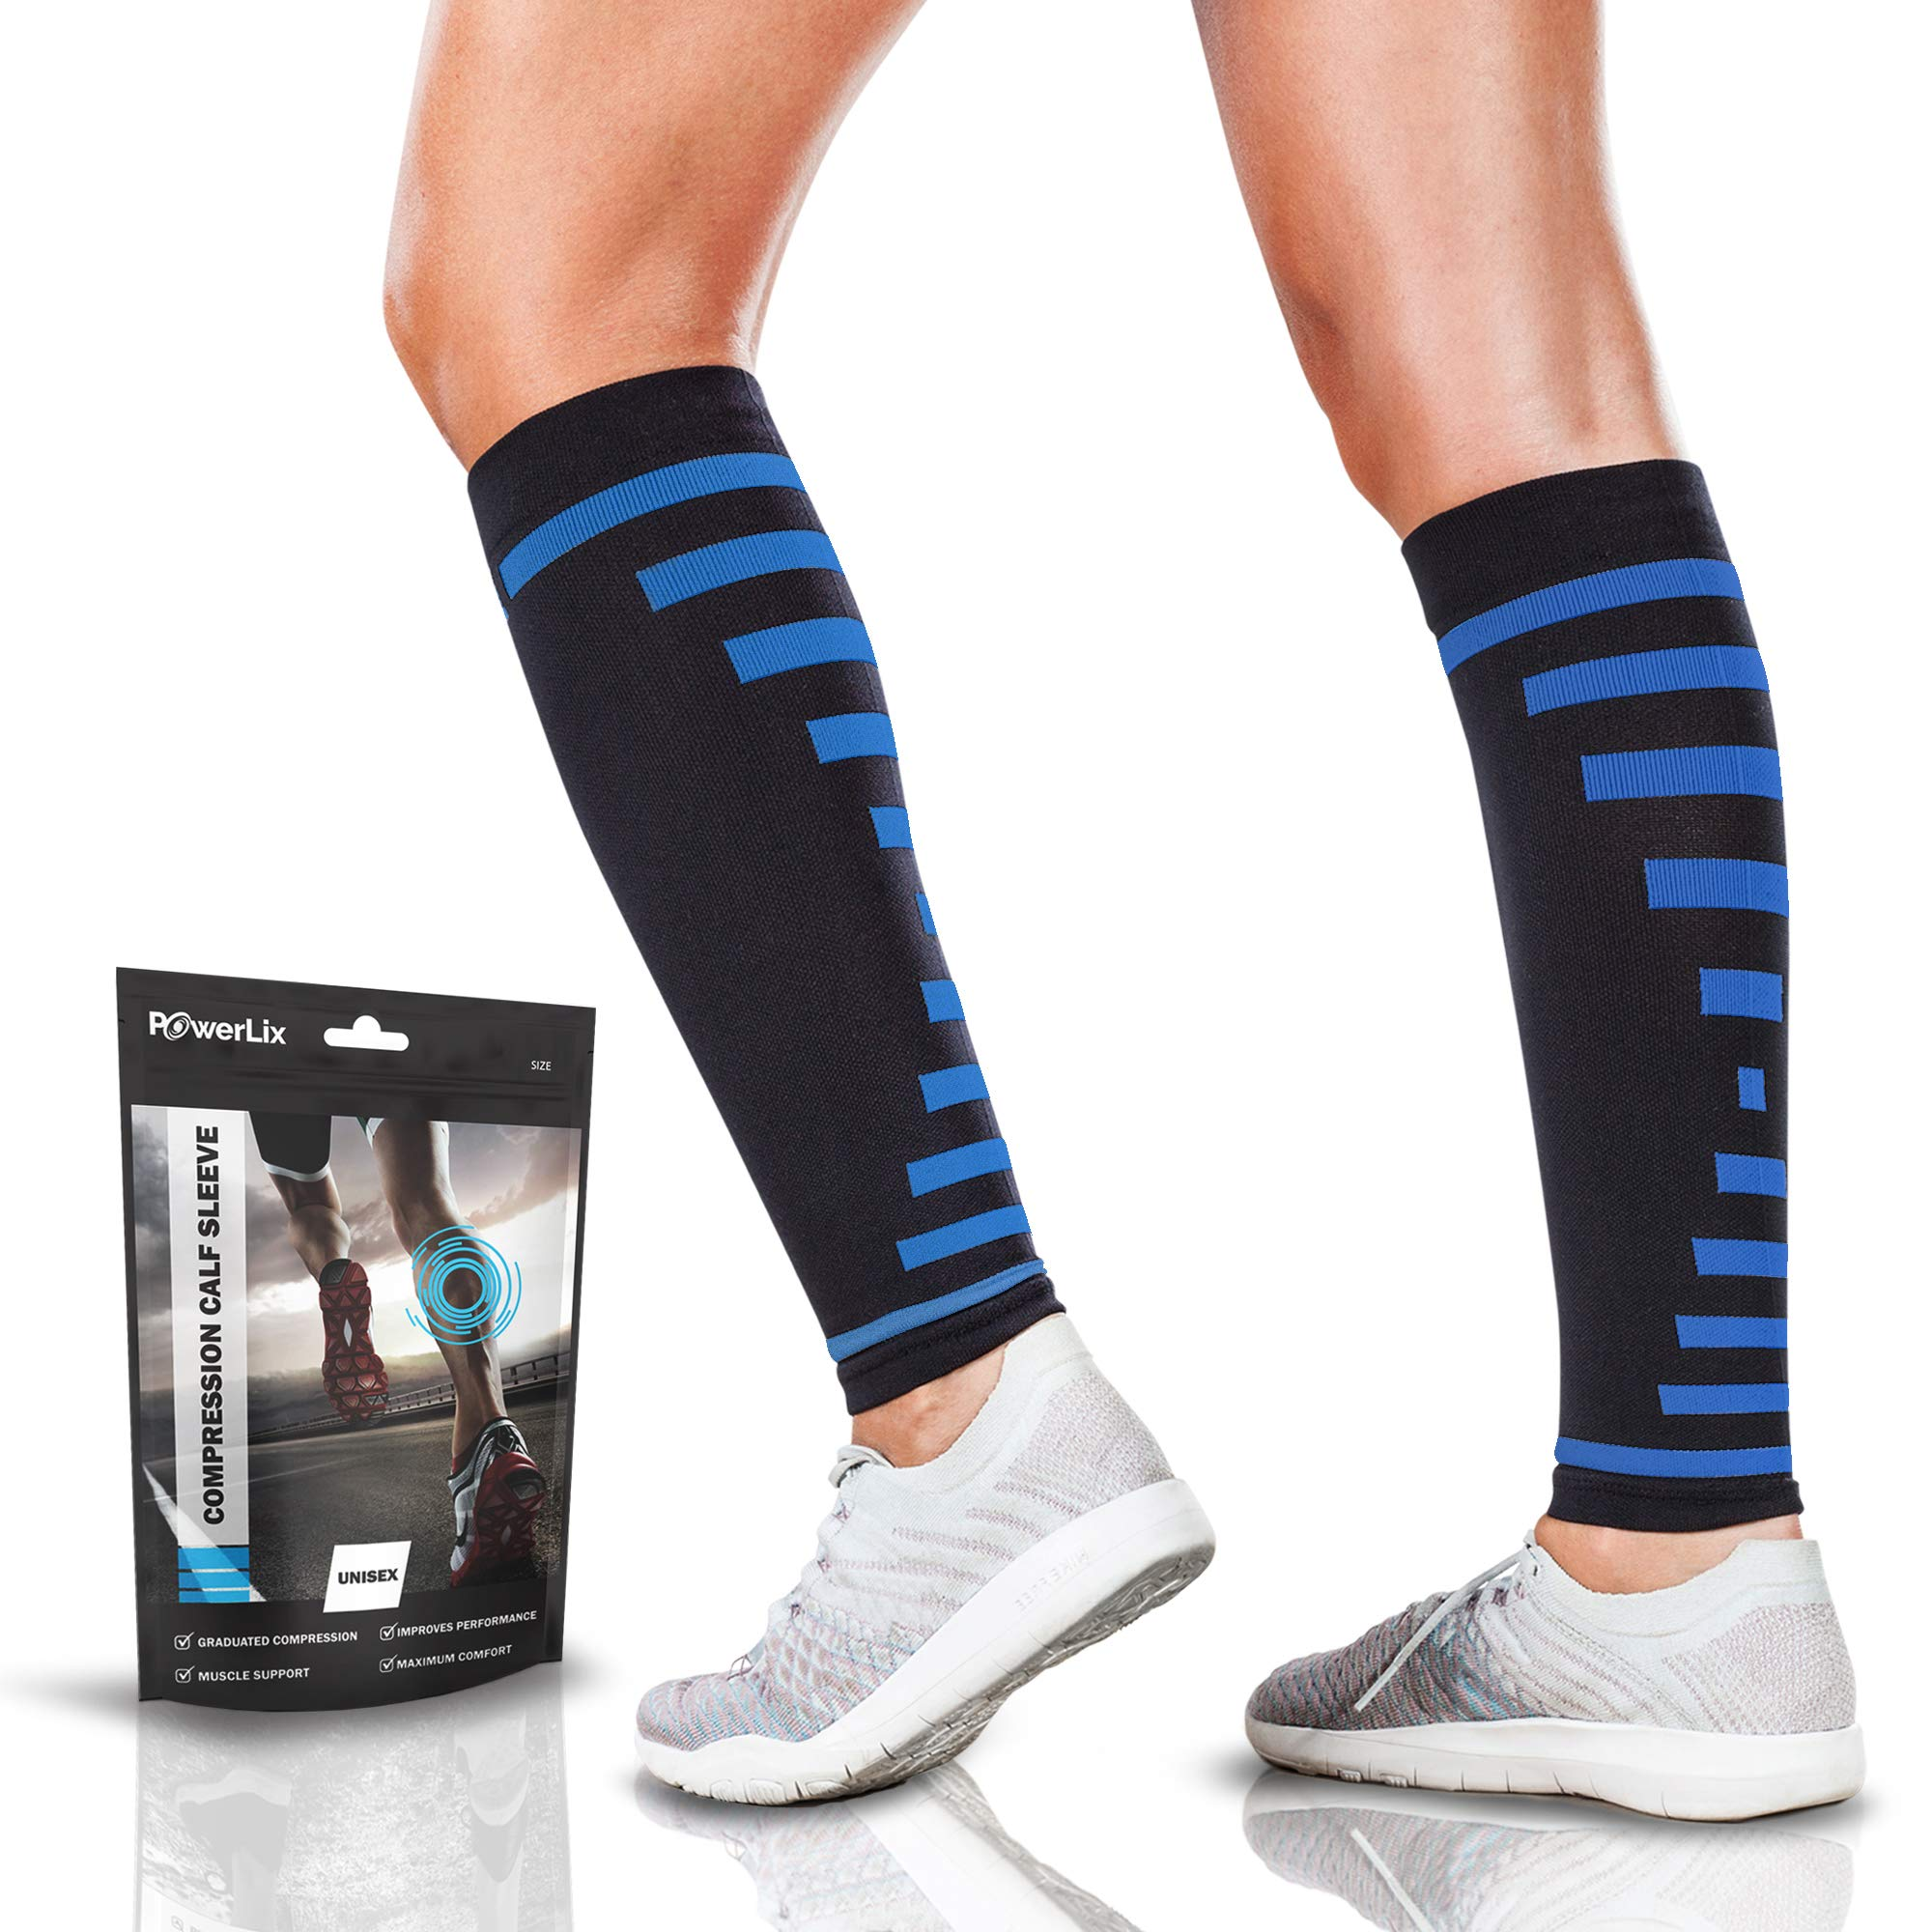 PowerLix Calf Compression Sleeve (Pair) - Supreme Shin Splint Sleeves for Men & Women - Perfect for Your Calves for Running, Ultimate Support for Leg Pain Relief and Recovery - 20-30 mmHg by POWERLIX